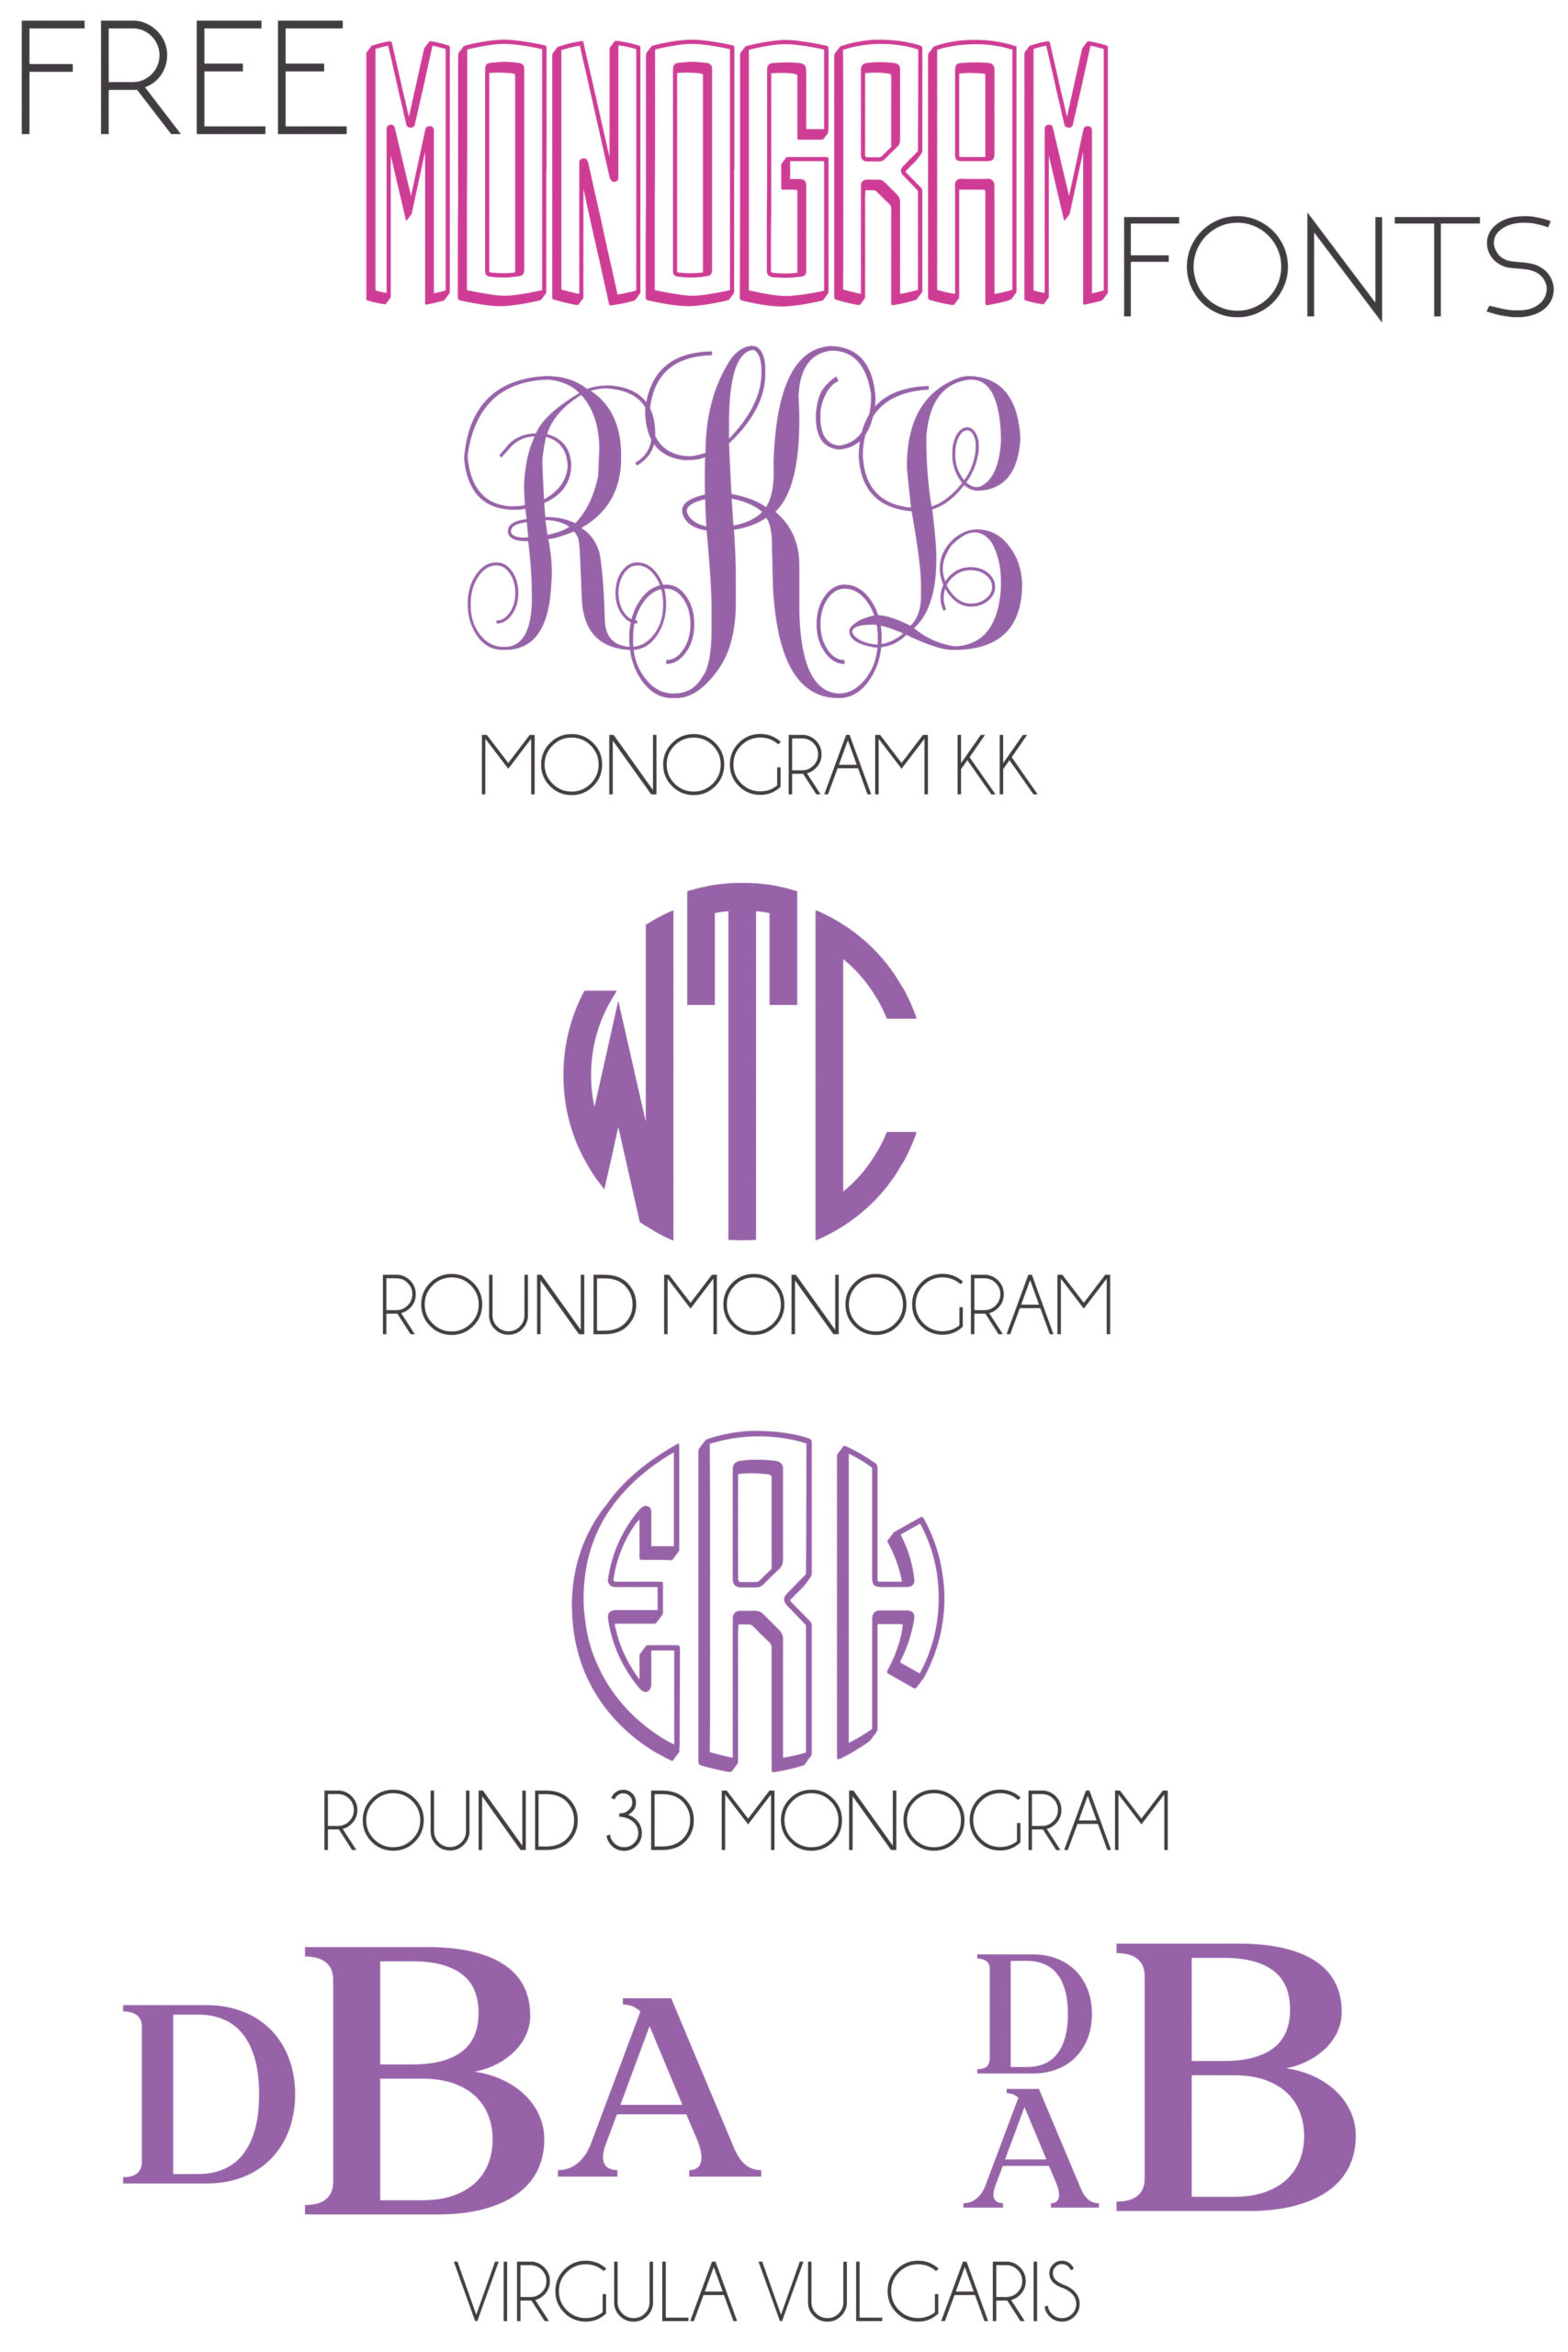 Best Font For Monogram : monogram, Monogram, Fonts, Glitter, Graze